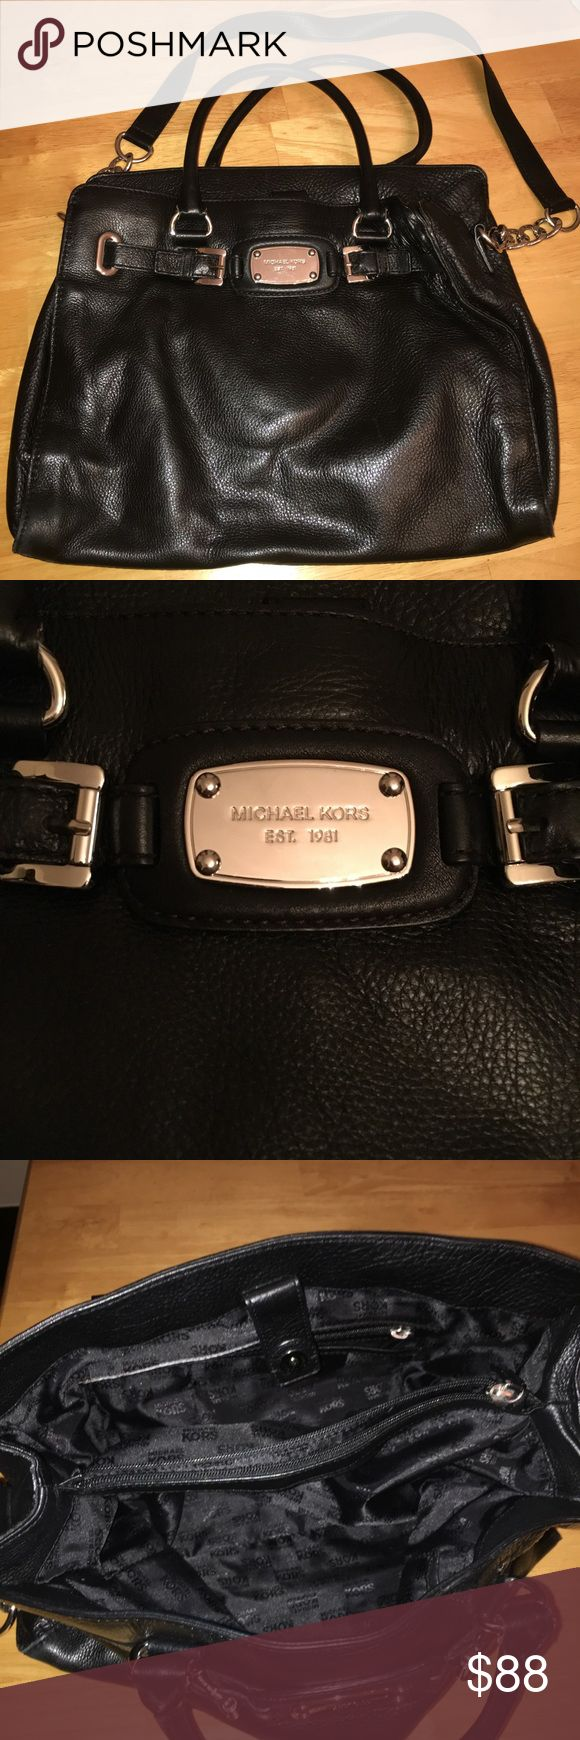 Michael Kors Black Leather Bag Can be worn as cross body or handbag! Very spacious bag with several compartments. Black leather is timeless! Michael Kors Bags Crossbody Bags